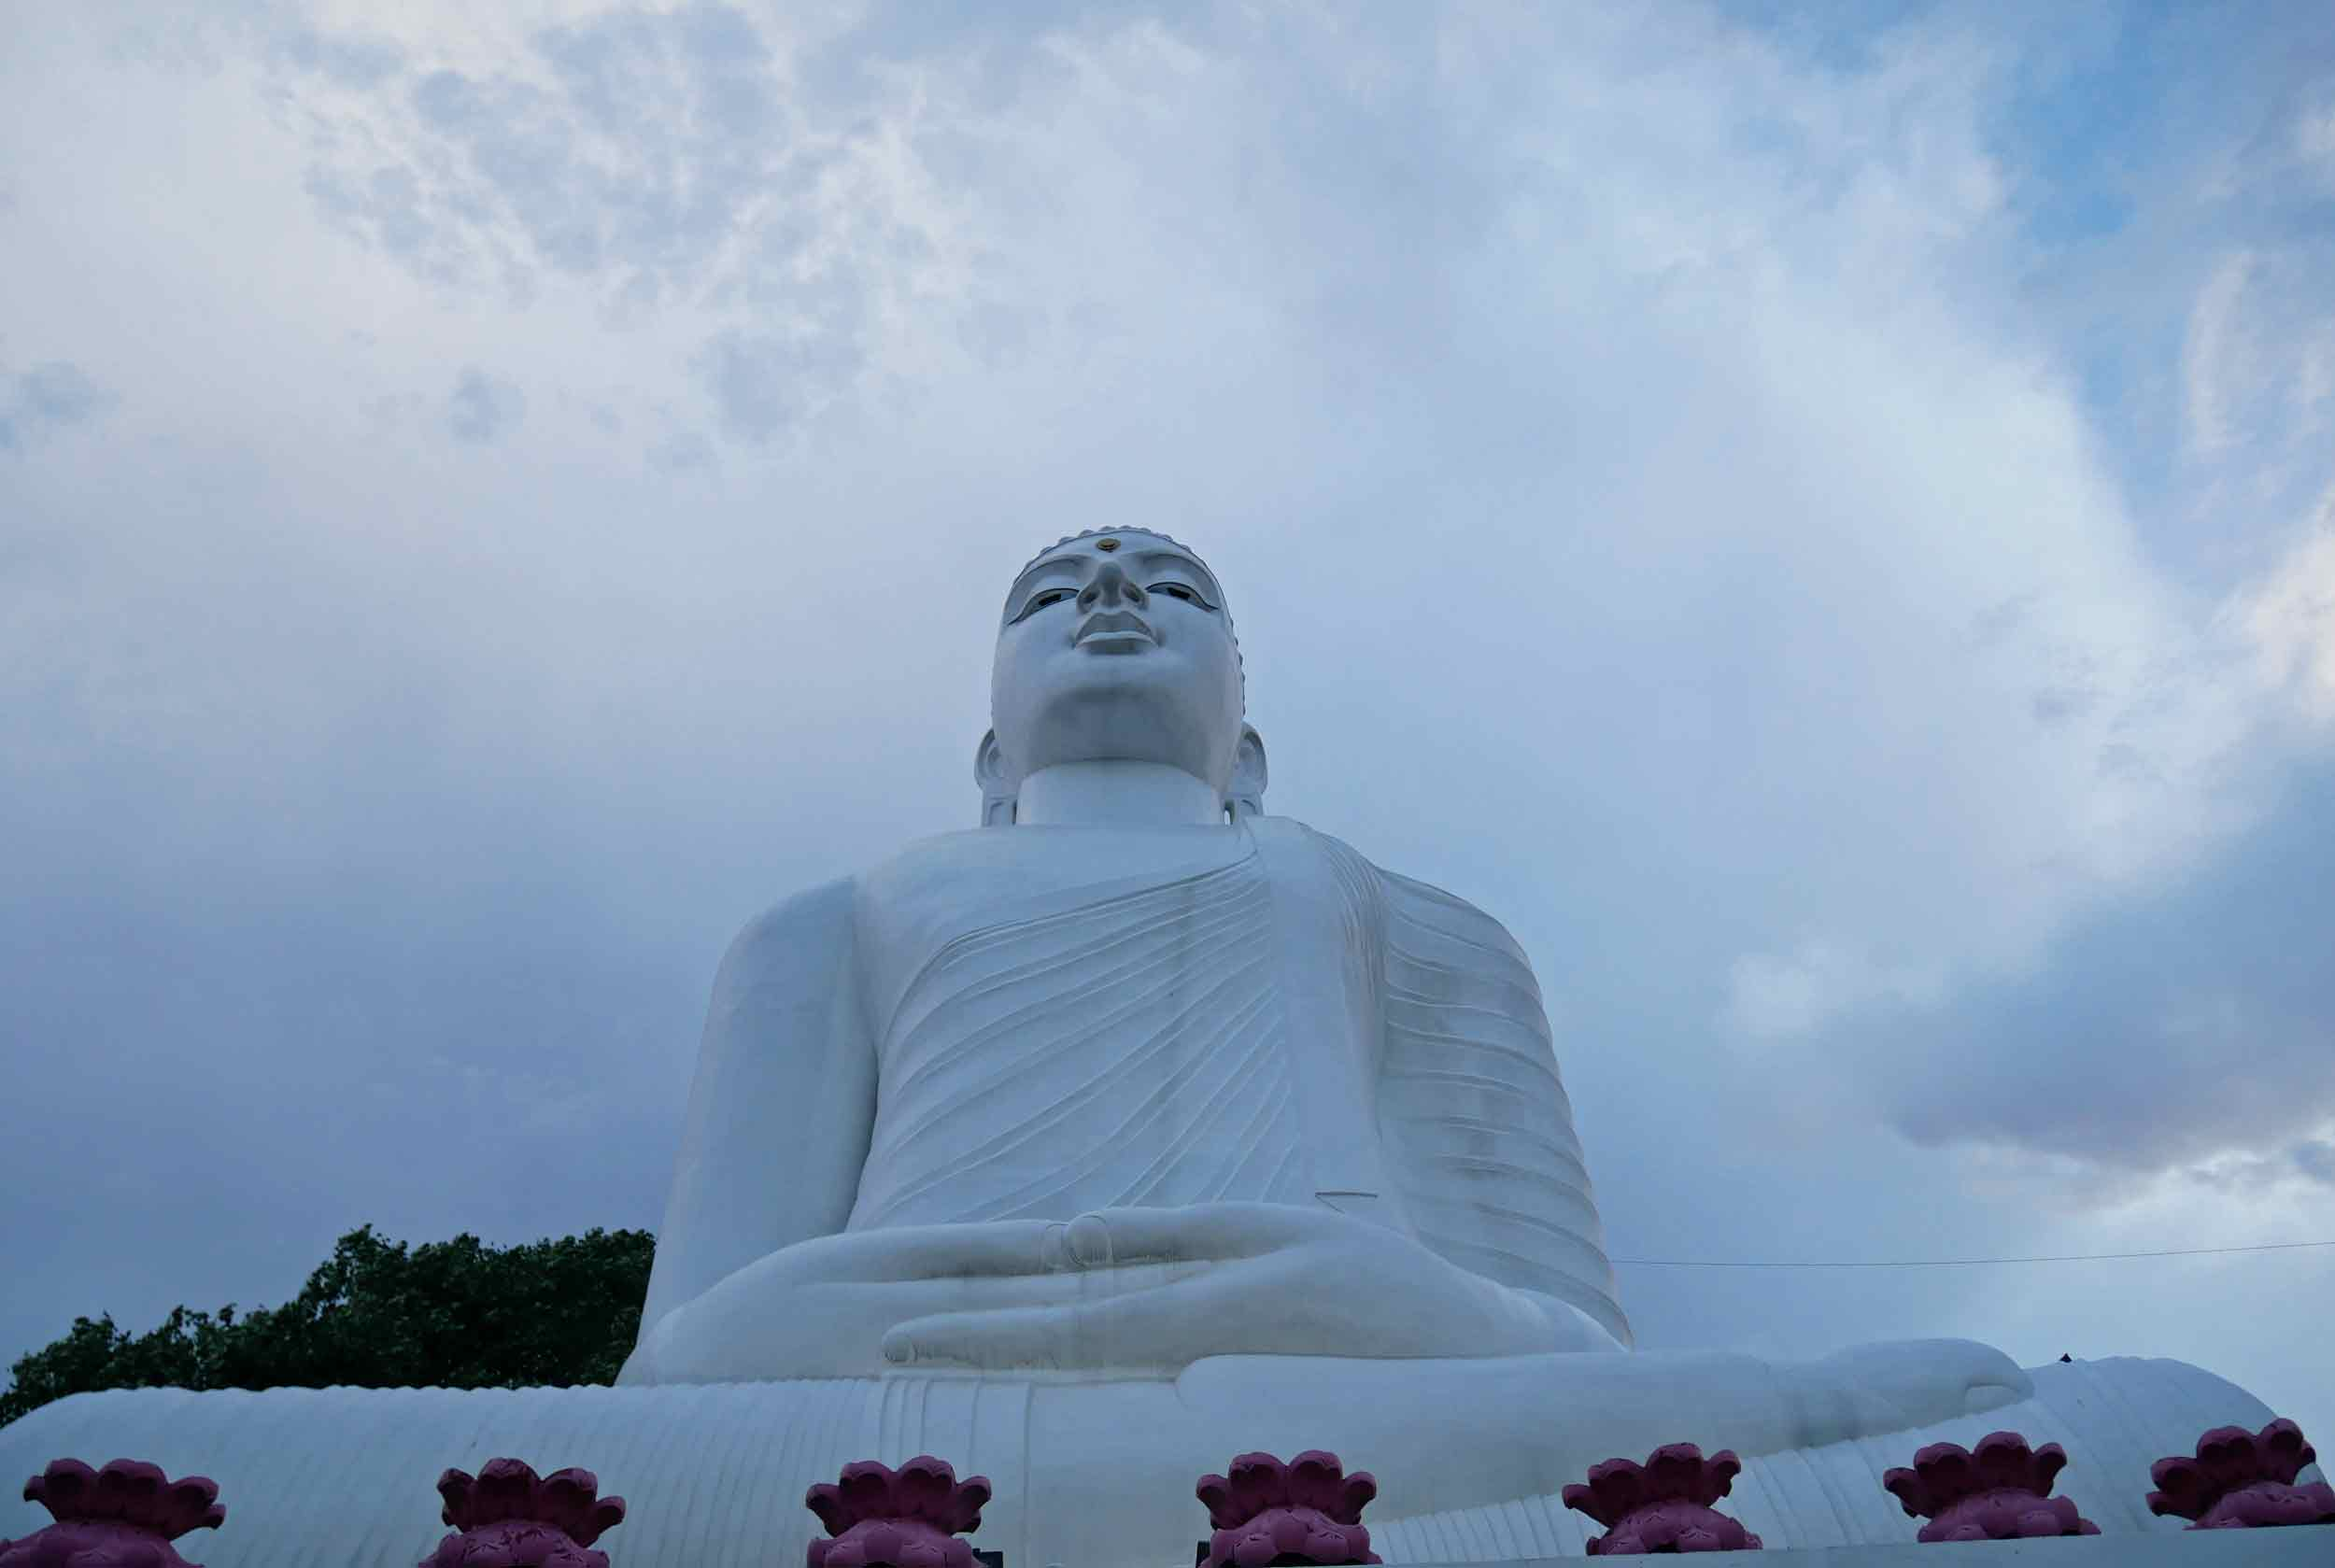 Our last adventure in Kandy was to mount the climb to the Giant Buddha statue overlooking the former capital – we made it just before the evening rain!